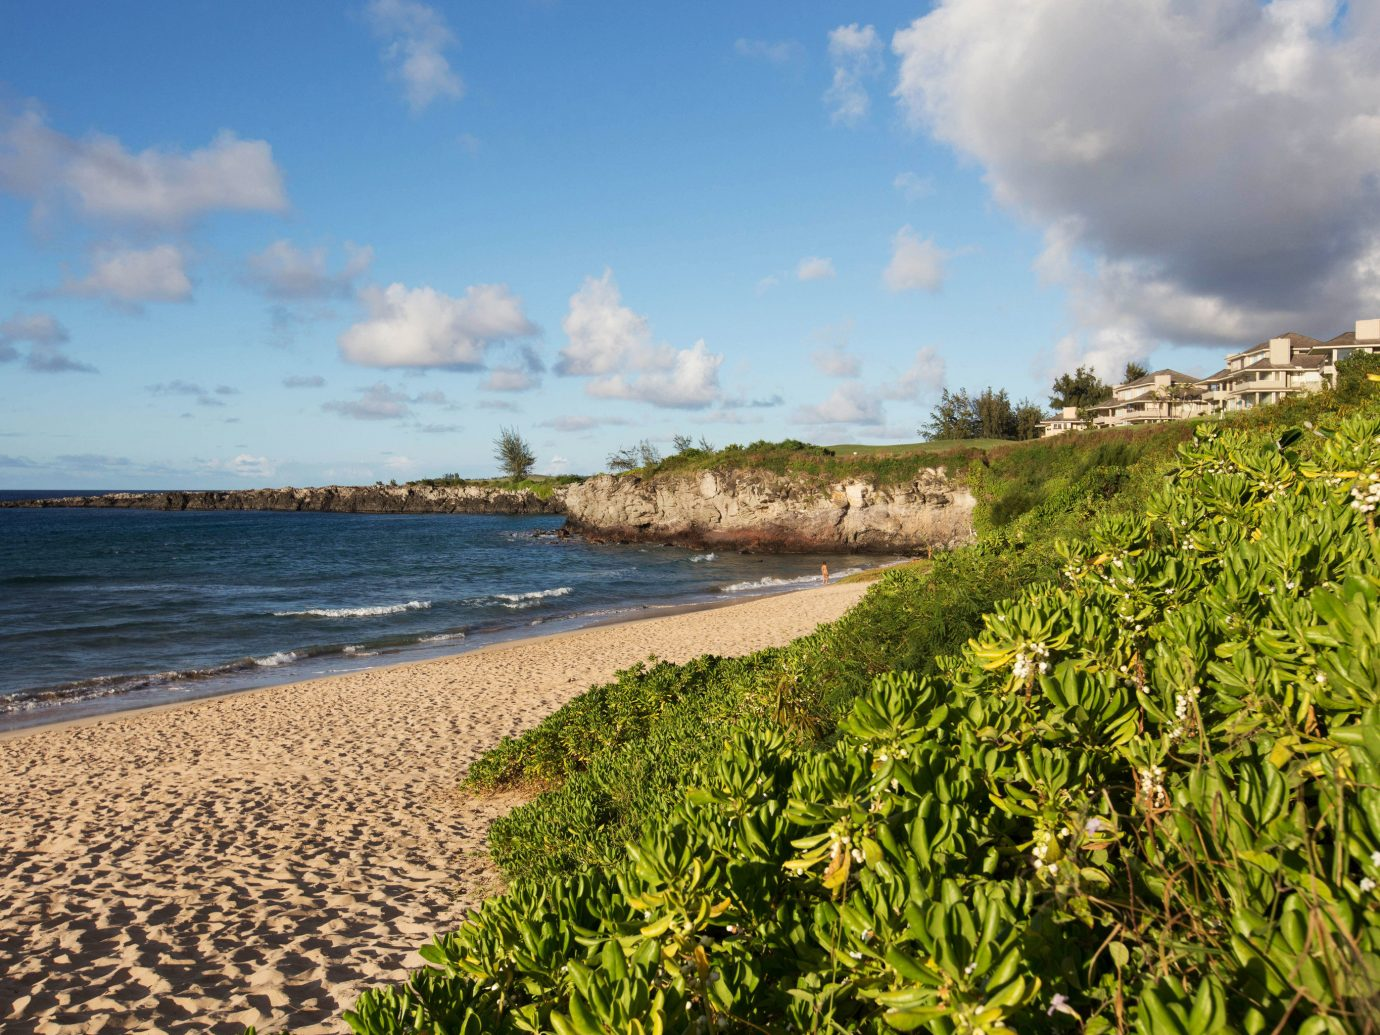 sky outdoor water habitat Nature shore Coast Beach Sea body of water geographical feature Ocean horizon cloud grass vacation morning landscape rural area cliff sunlight bay wave sand terrain cape tropics sandy day